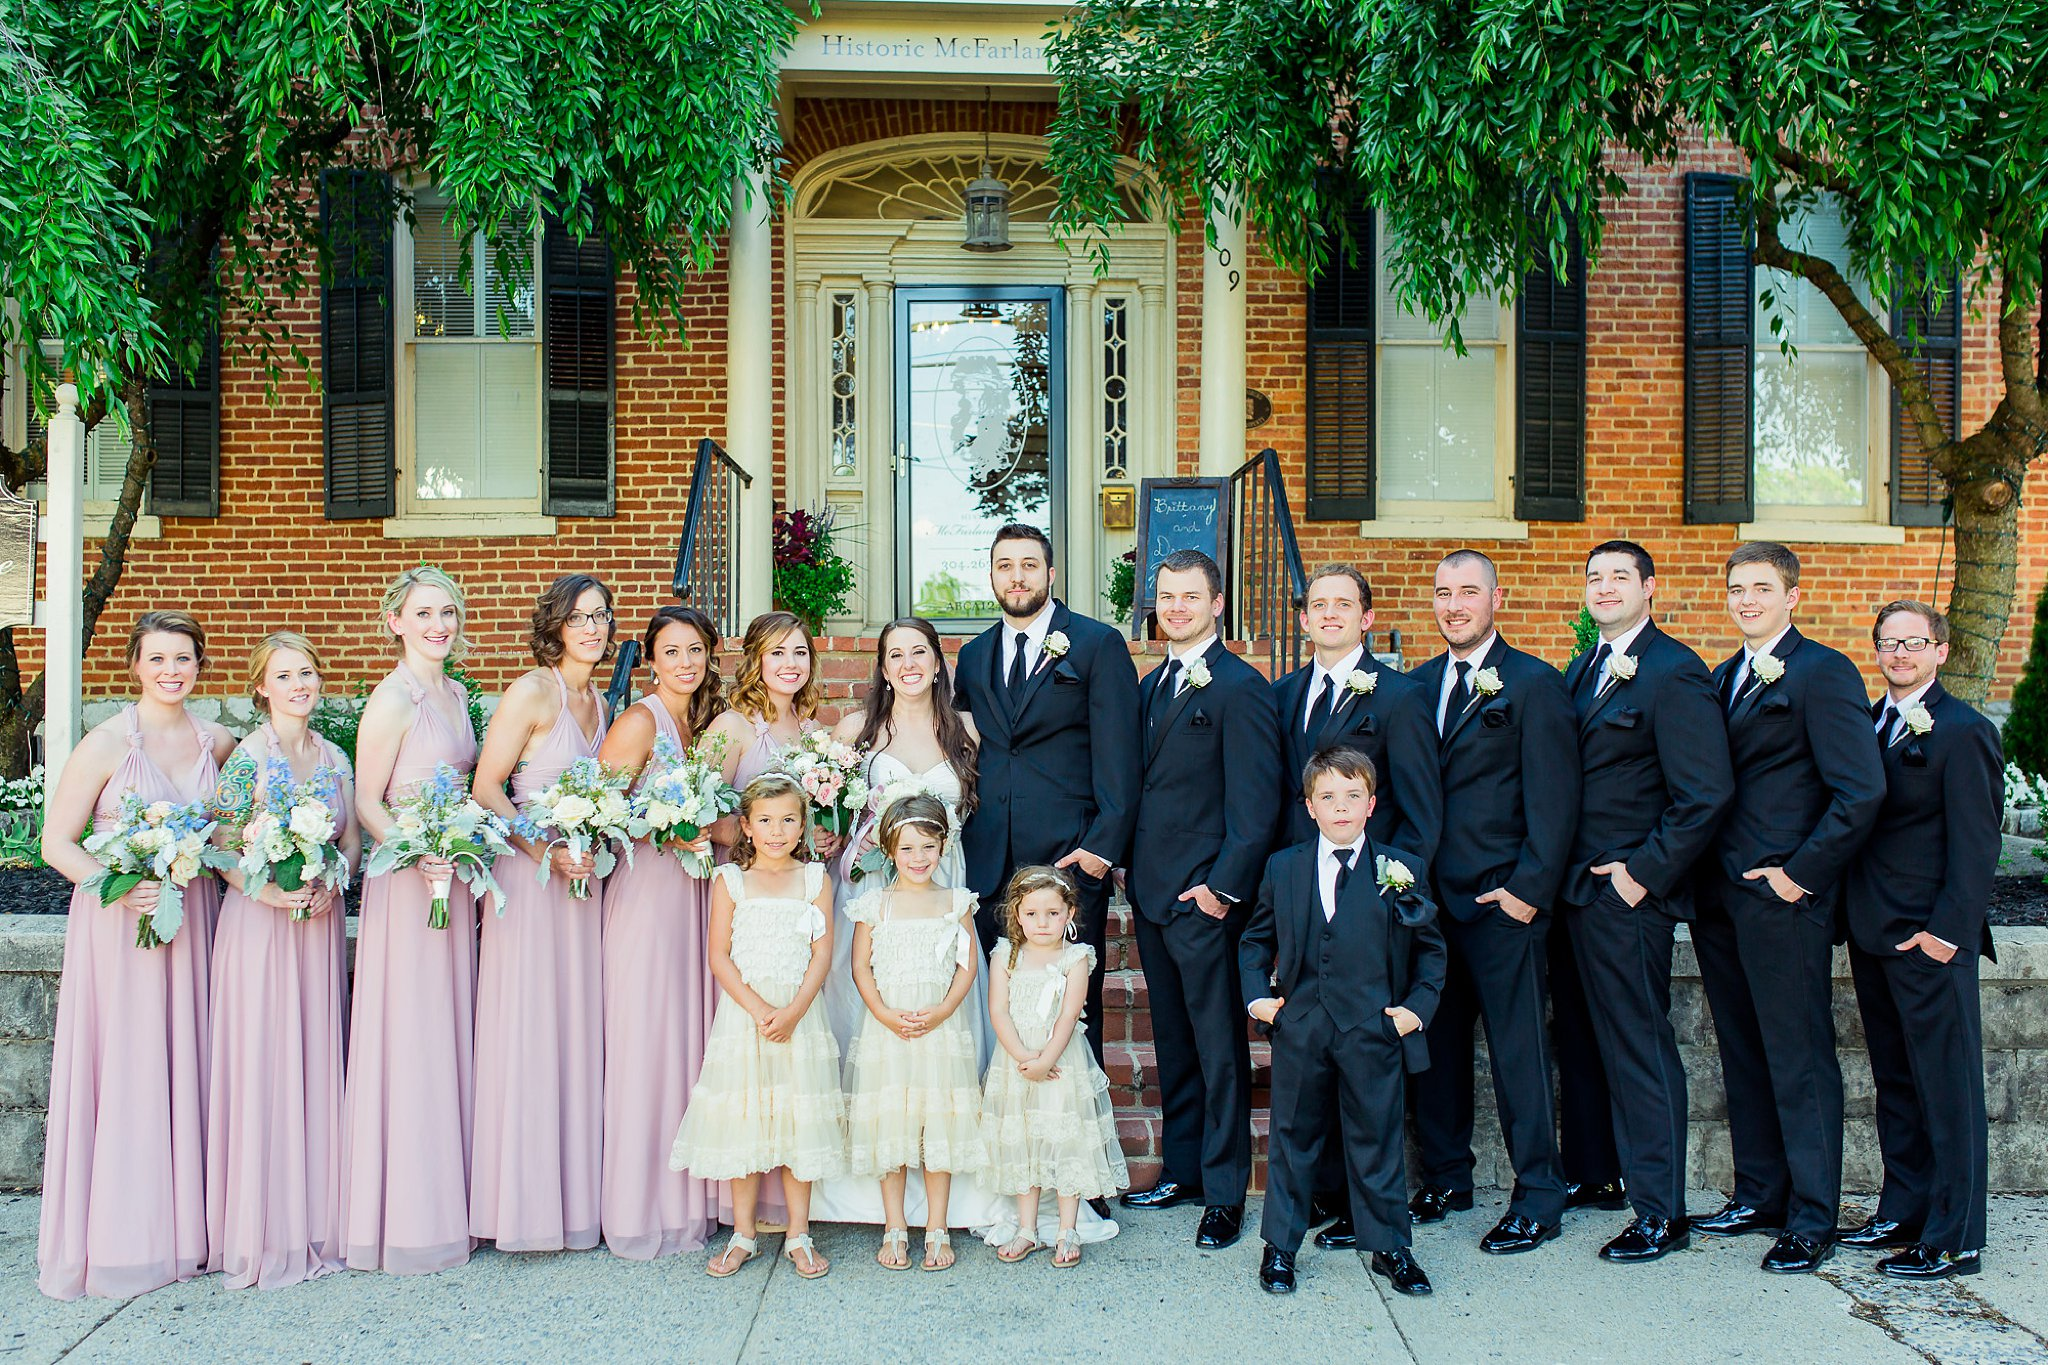 Historic McFarland House Wedding Photos West Virginia Wedding Photographer Brittany and Drew-3721.jpg